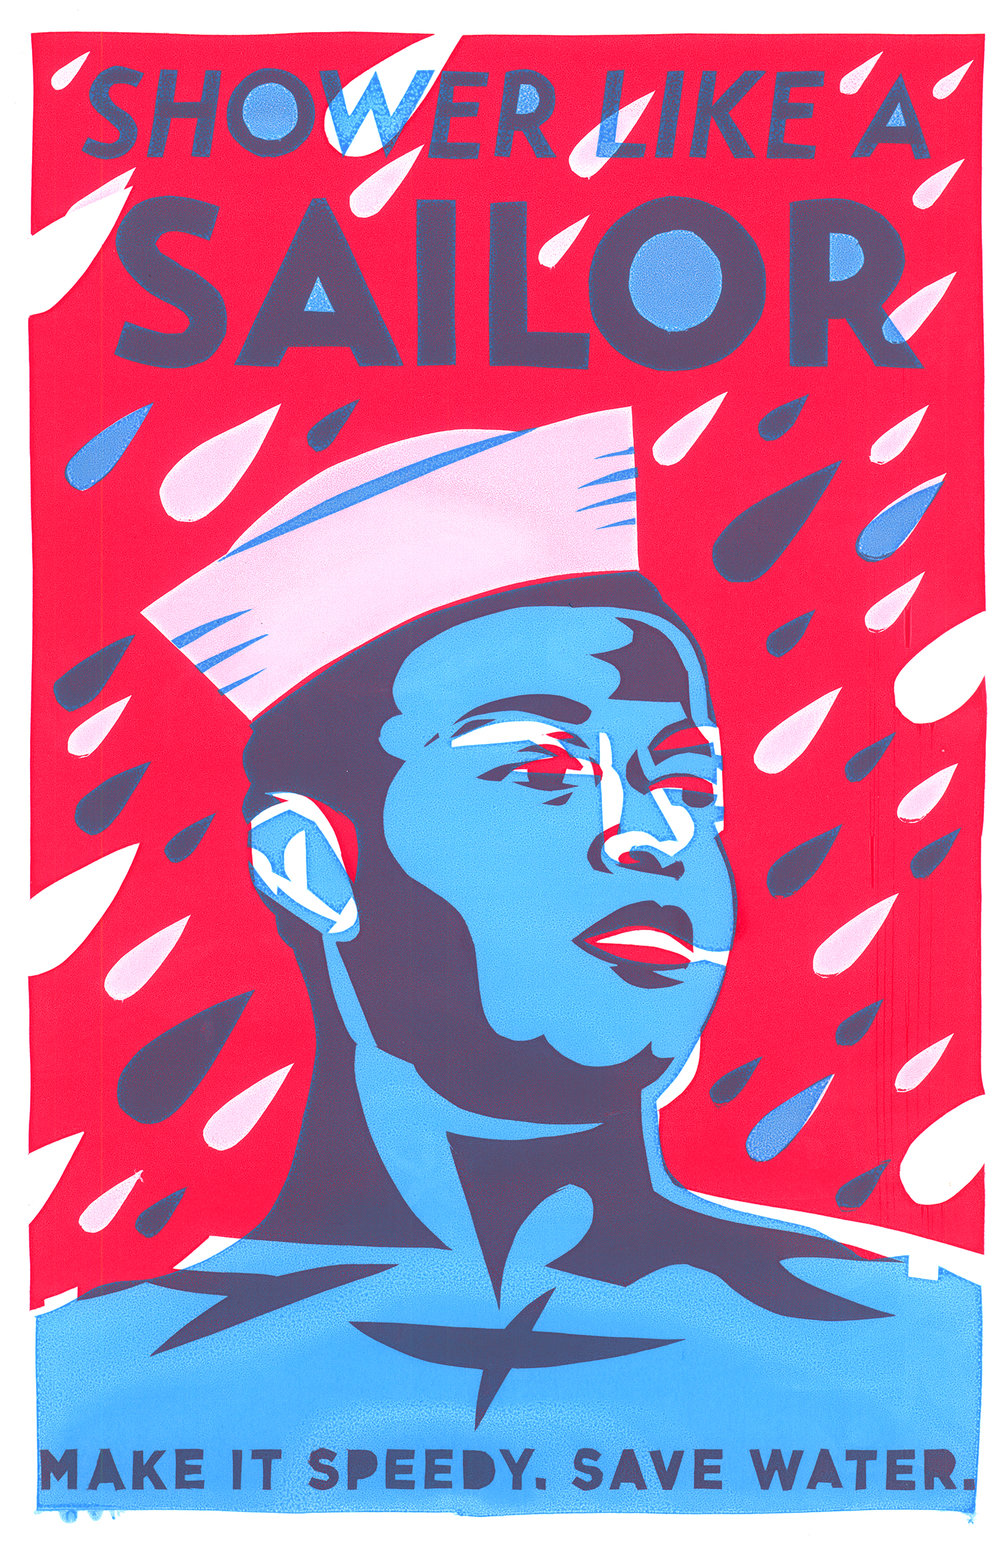 Shower Like A Sailor